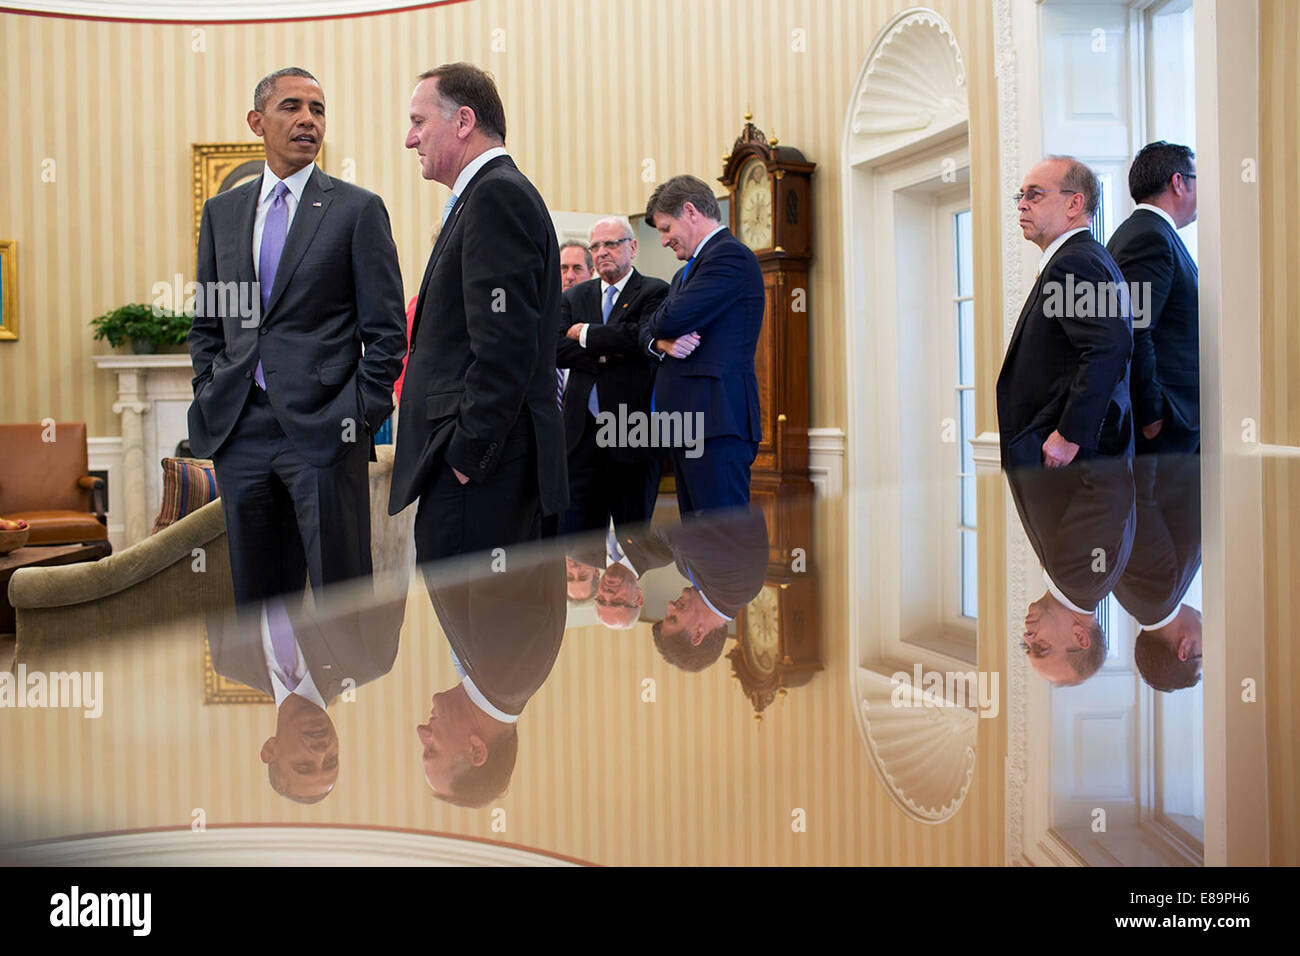 President Barack Obama talks with Prime Minister John Key of New Zealand in the Oval Office, June 20, 2014. - Stock Image